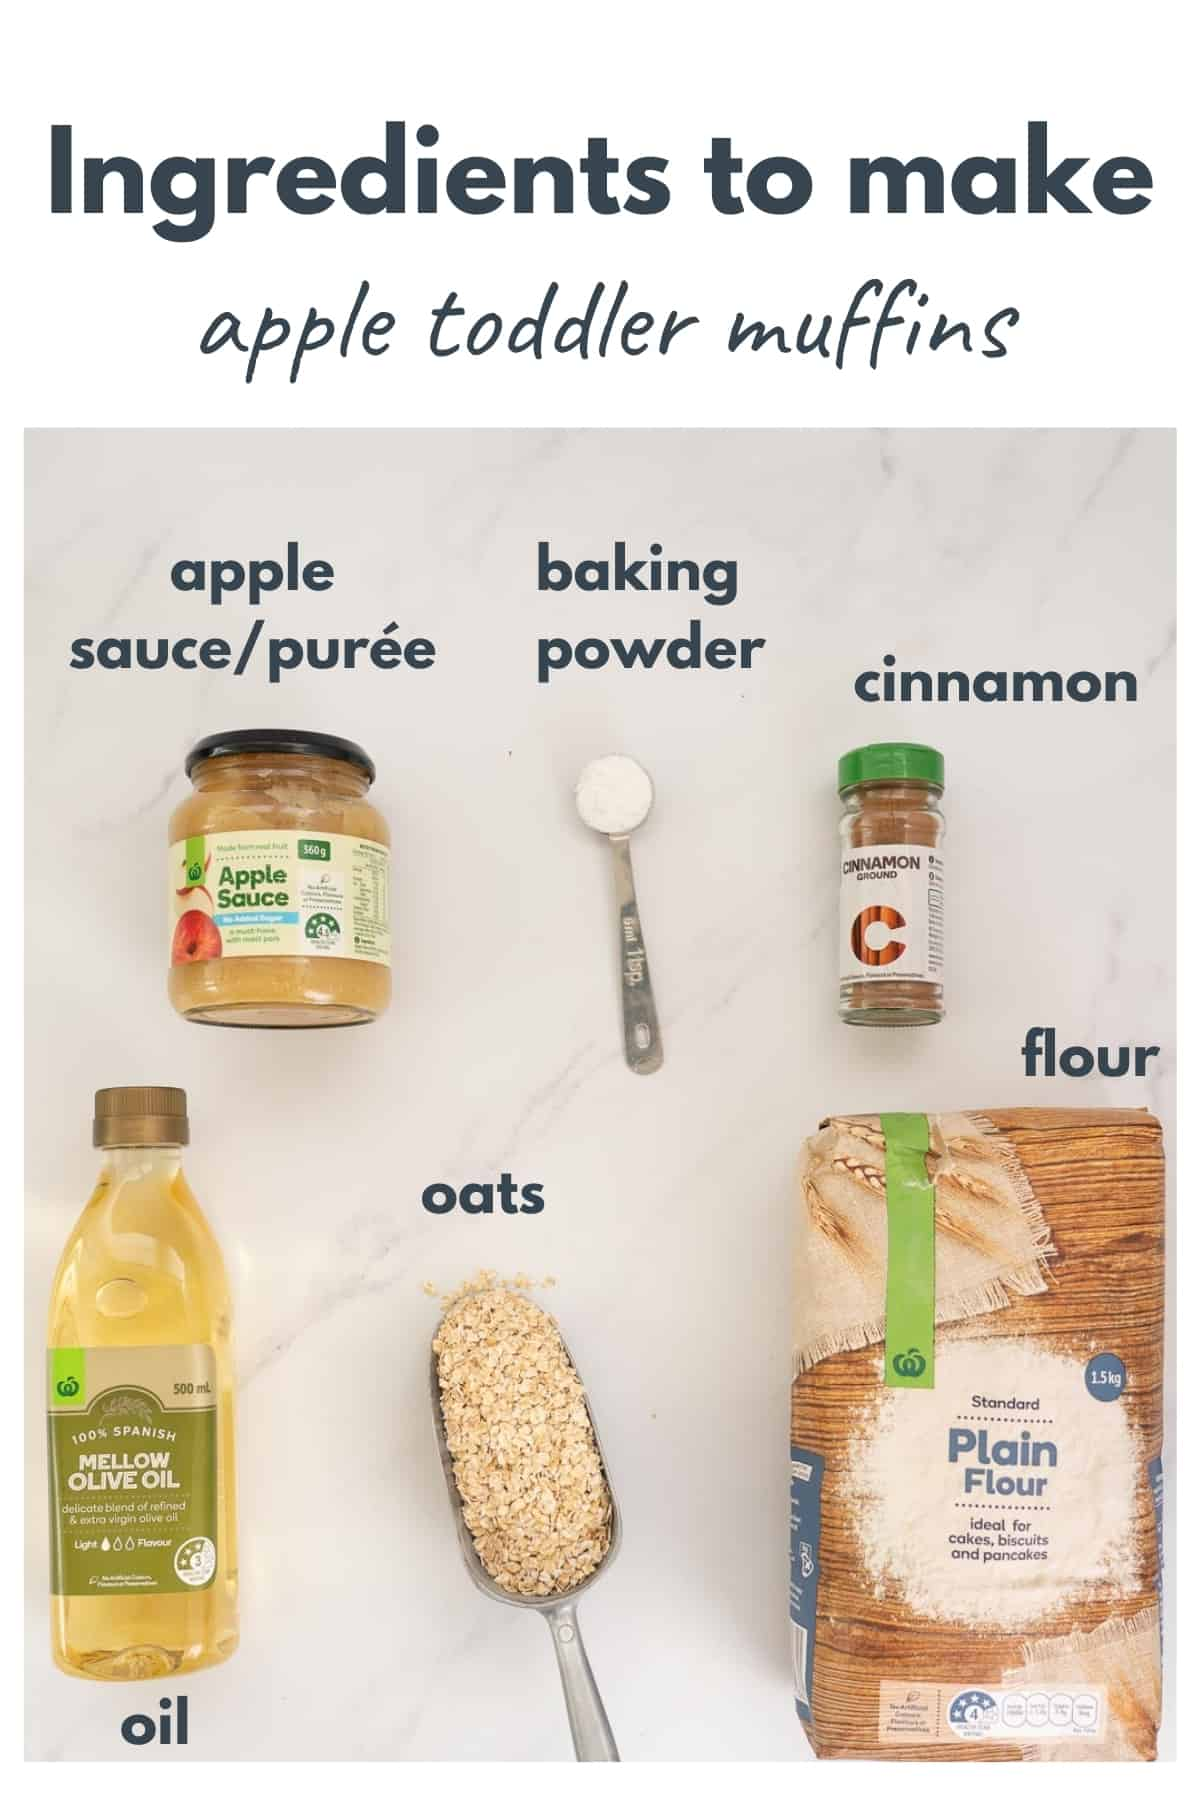 The ingredients for apple toddler muffins laid out on a bench top with text overlay.